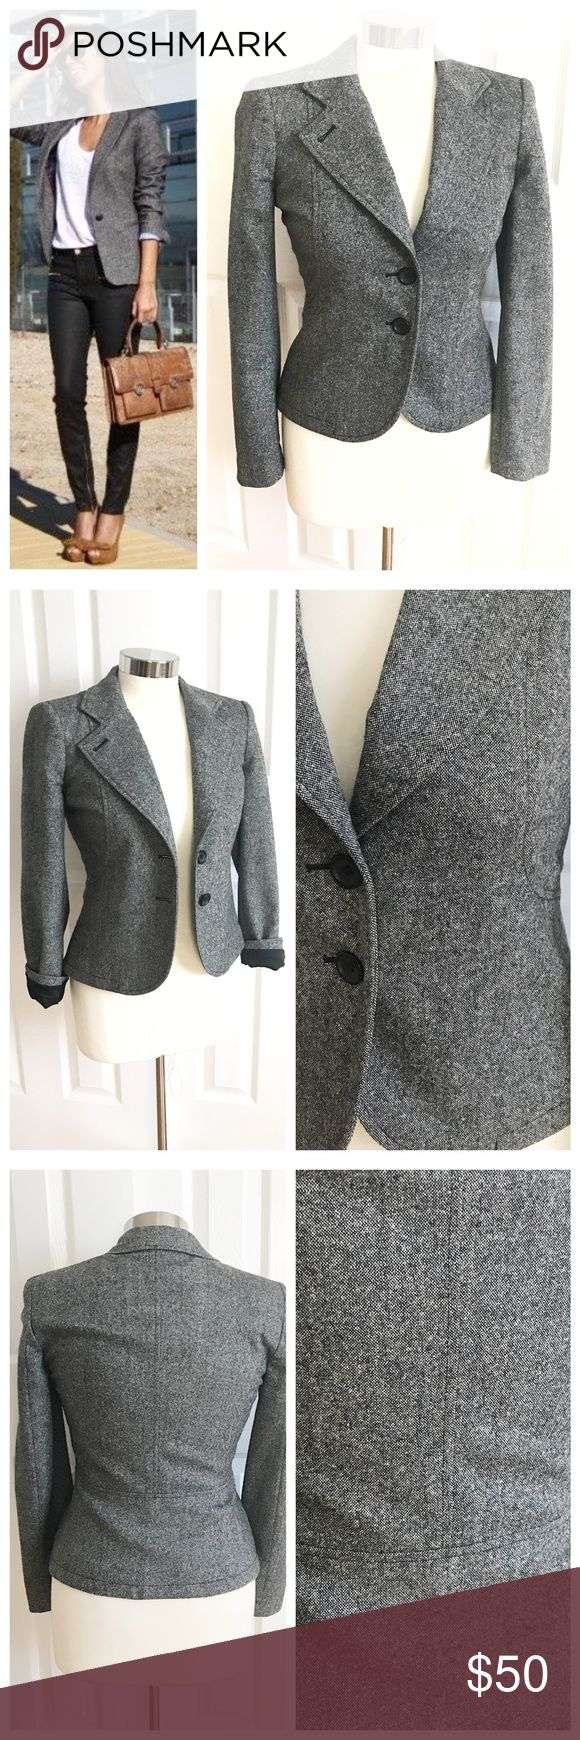 French Connection Gray Blazer Dark gray blazer / jacket, lining black that can be seen when you roll up the cuffs. Buttons are black. No pockets. Sleek look! French Connection size 2. Also could work for a 4 petite. 52% virgin wool, 20% polyester, 16% polyamide, 10% silk, 2% elastane. Lining 100% acetate. Dry clean only. Great staple piece for your wardrobe! Nice transition piece from winter to spring! First photo on left not actual item just showing for styling! French Connection Jackets…